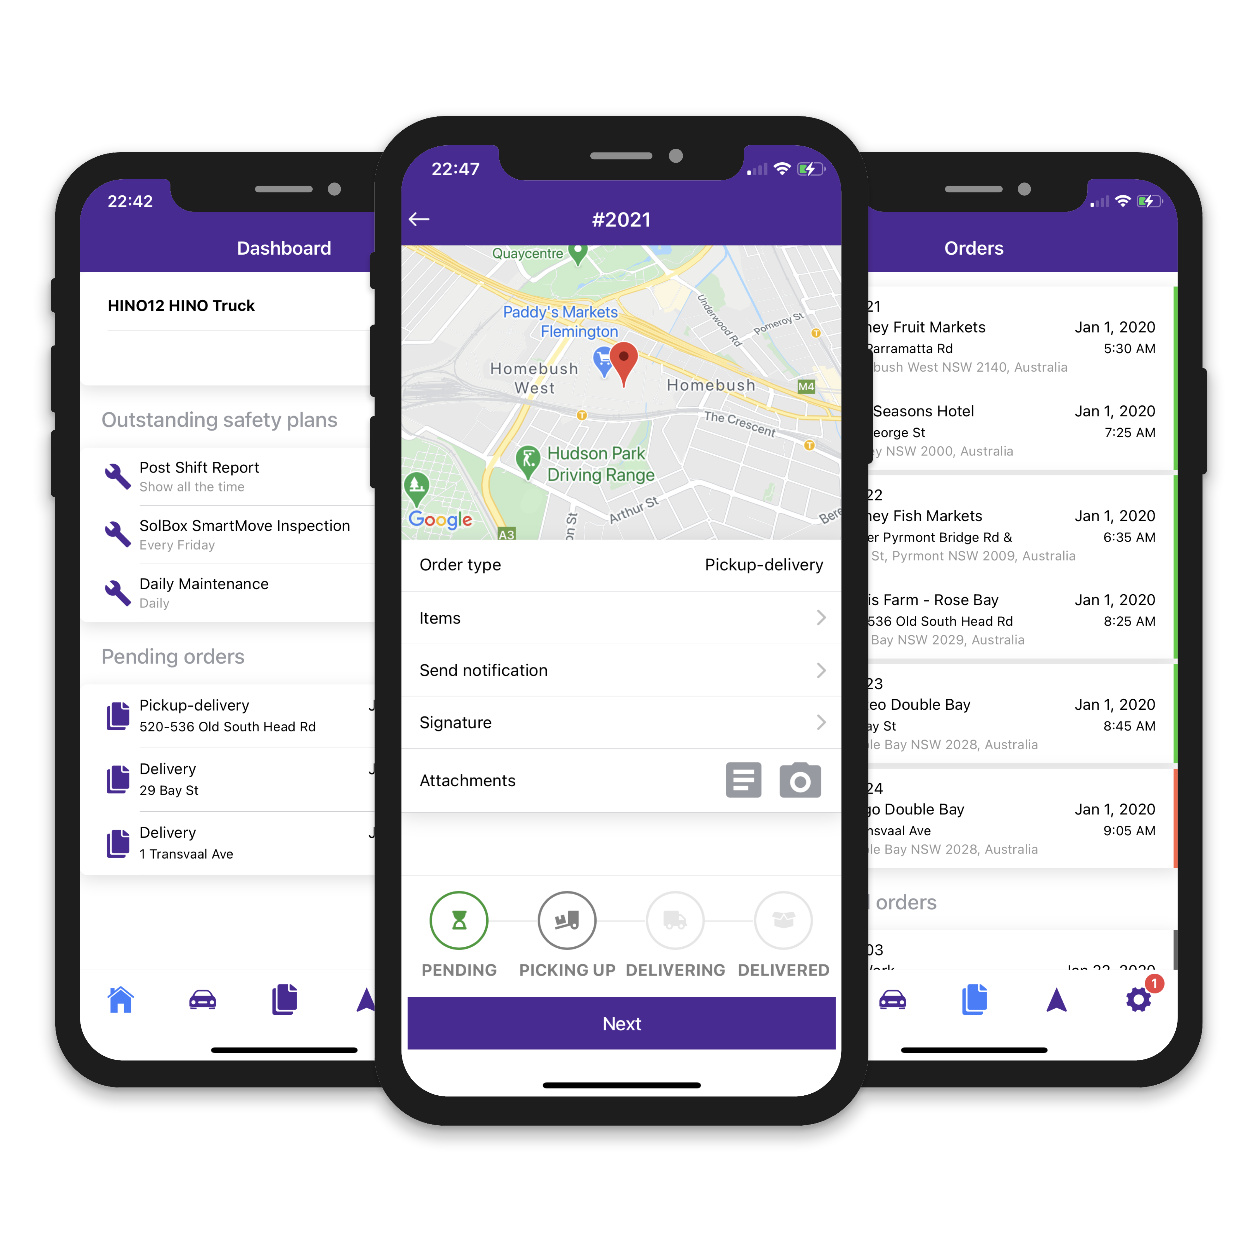 Driver Delivery App, Live driver tracking, ETA notifications, Heavy Navigation, Digital Signatures, Images, Comments, Payments, GPS location,  Check in/out, PDF POD Creation, Real-time updates, Offline Capability, Driver messaging